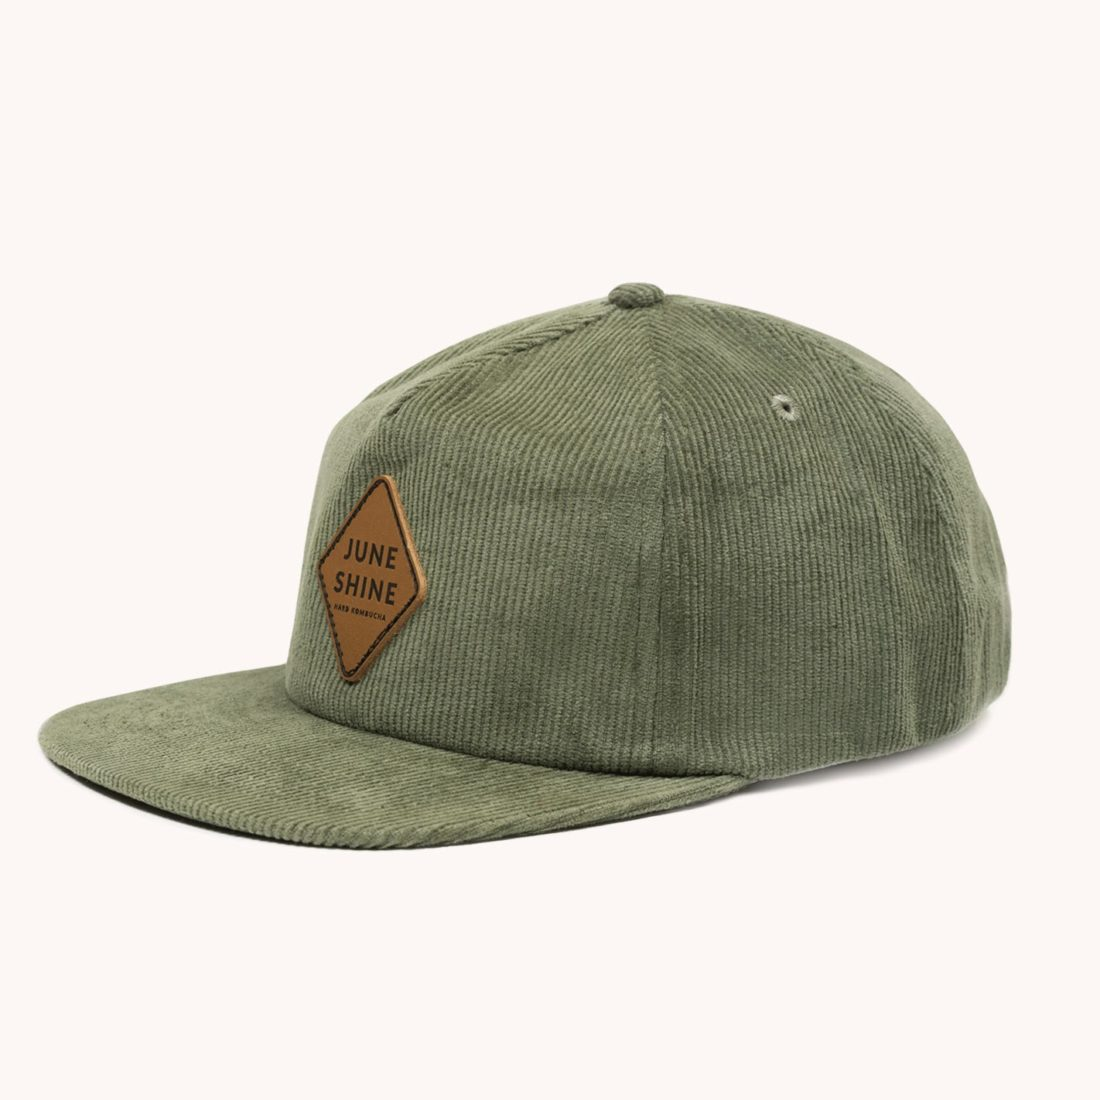 Camp Hat - Light Olive